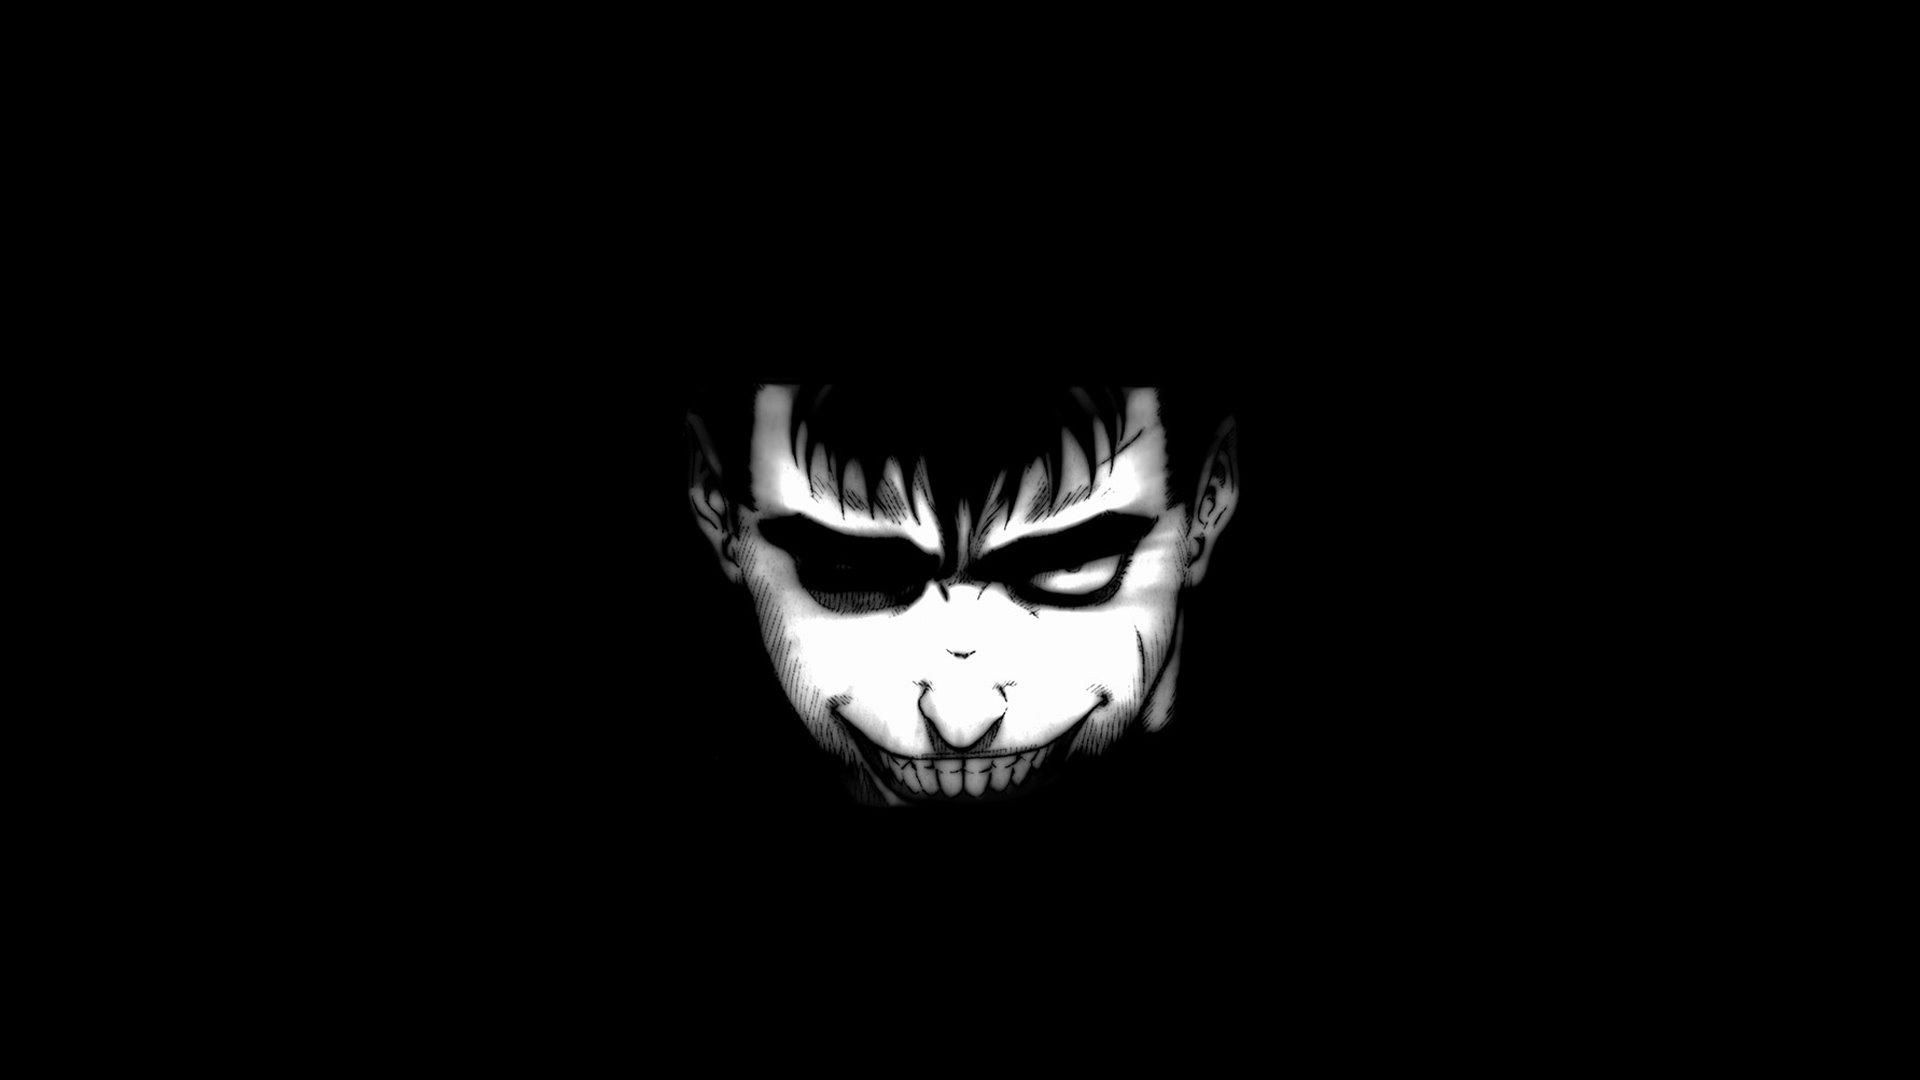 1920x1080 Berserk Anime Wallpaper | Wallpaper Studio 10 | Tens of thousands HD ...